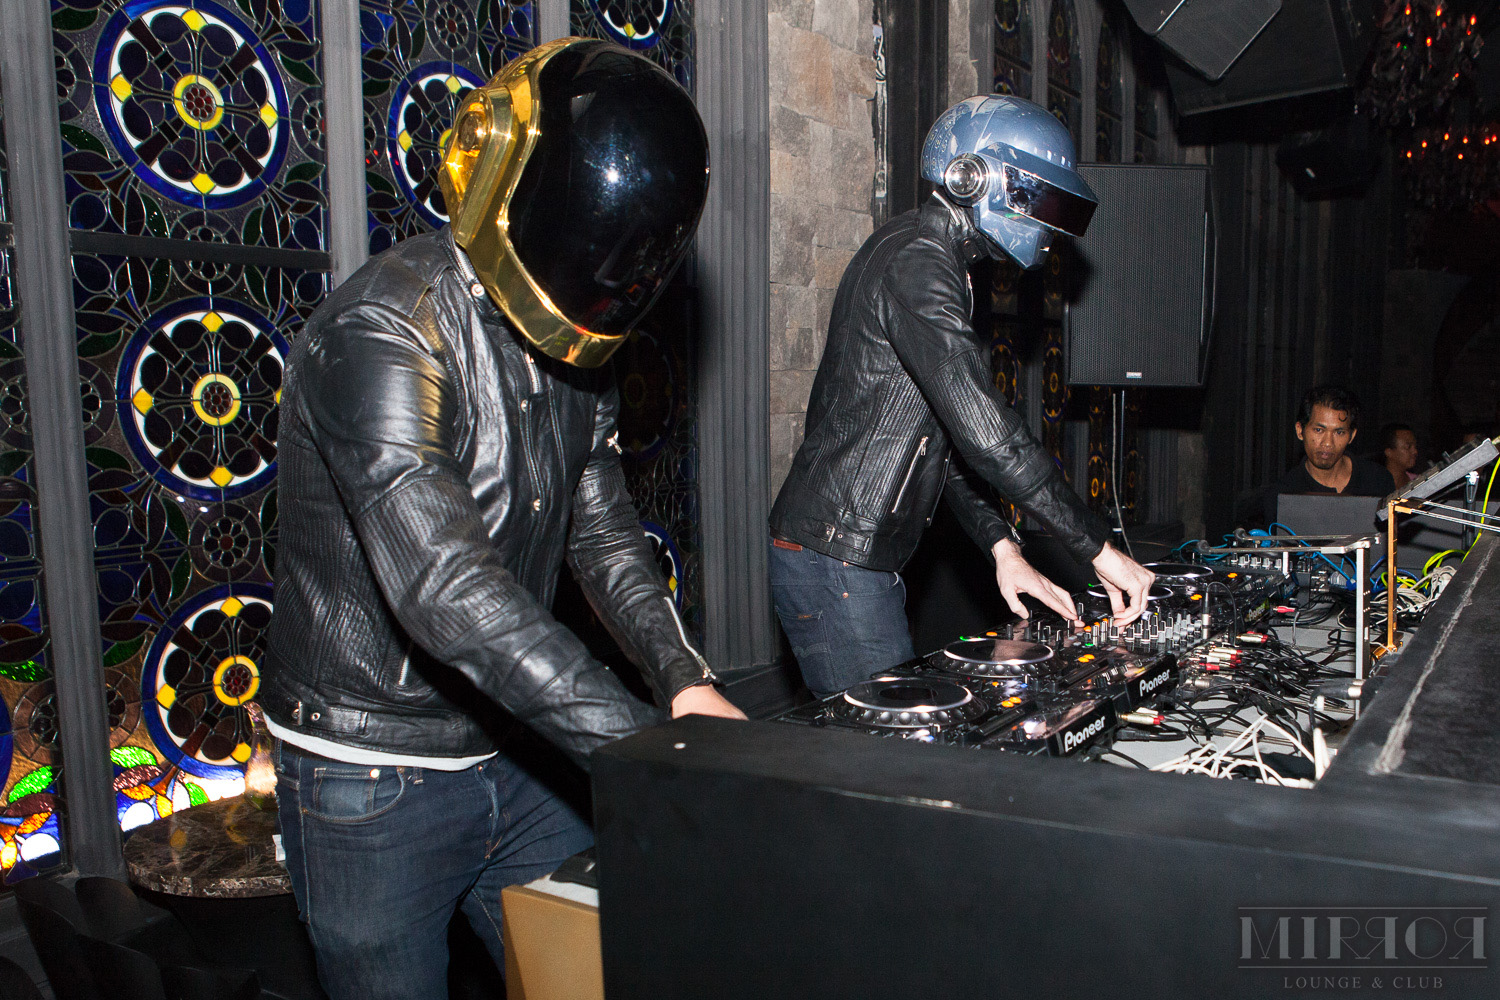 036_Daft Punk Tribute @Mirror 2014-12-04